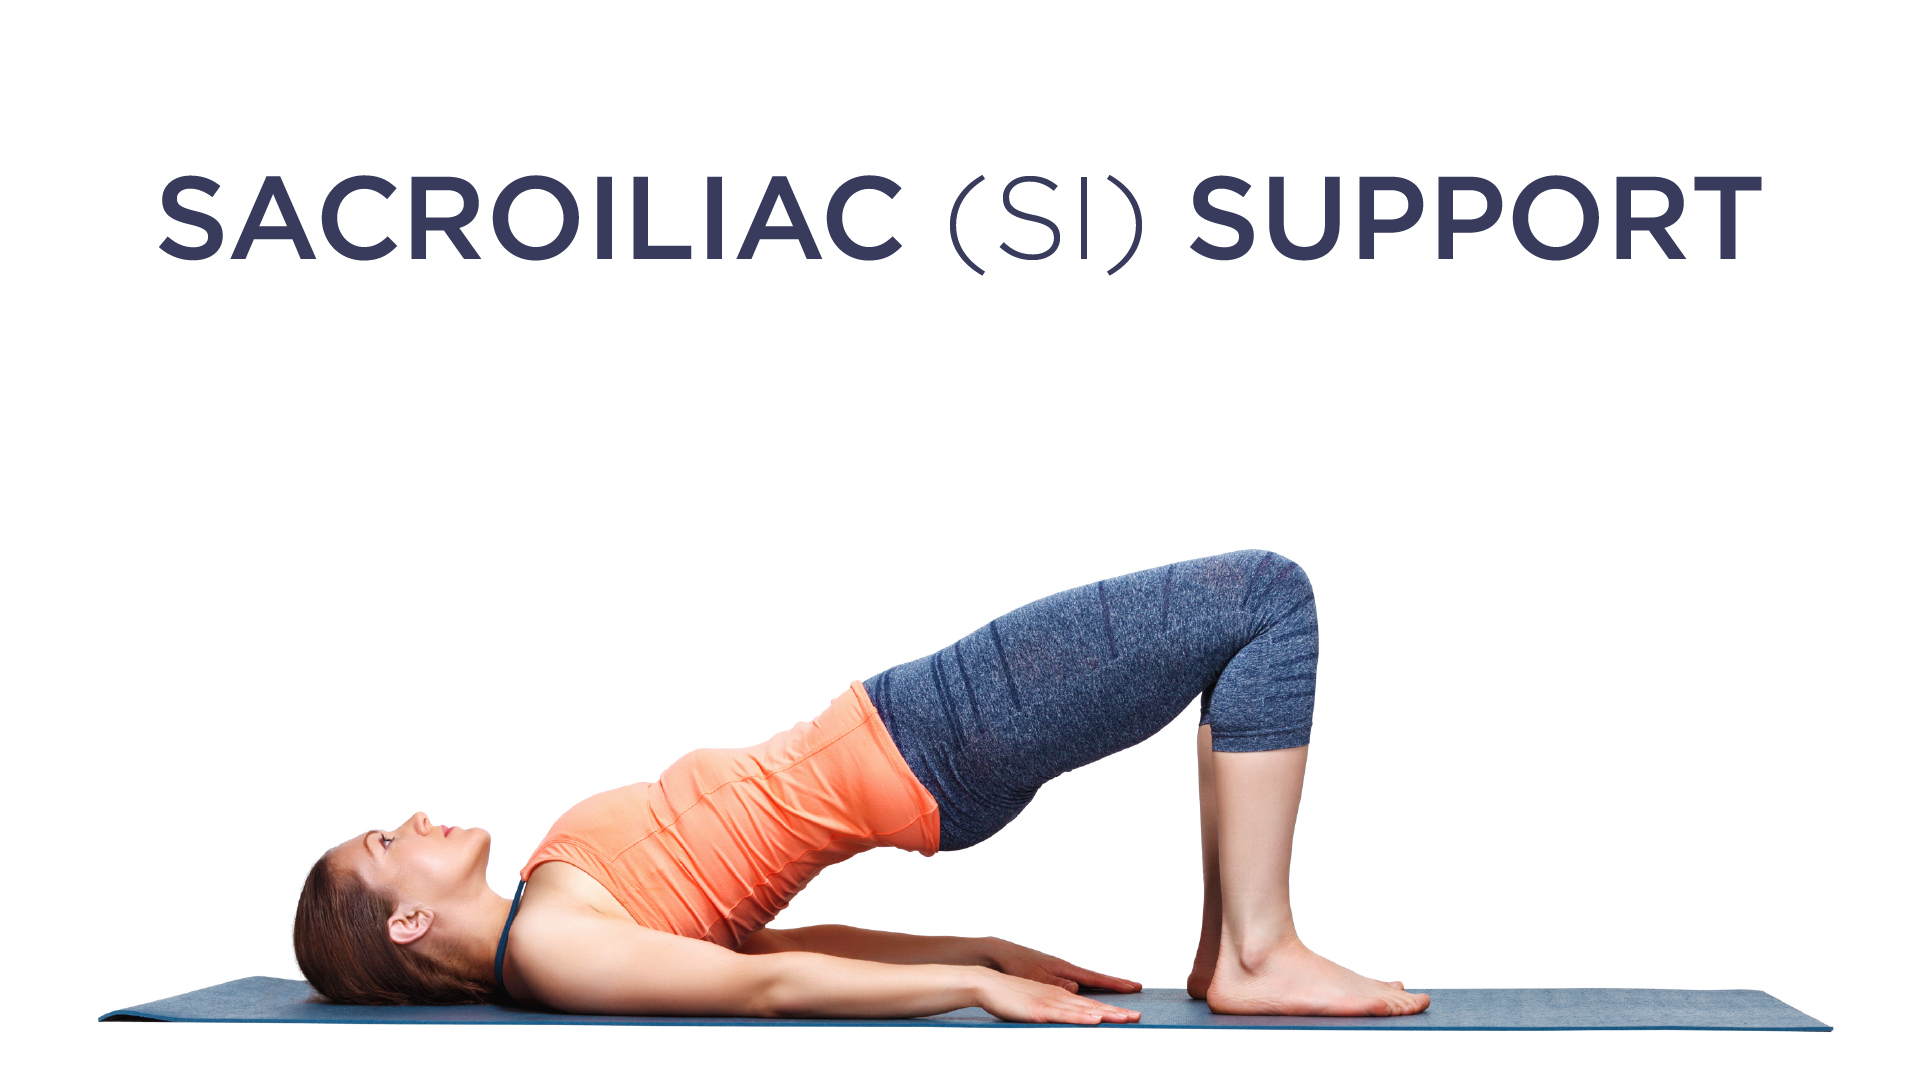 Sacroiliac support yoga international solutioingenieria